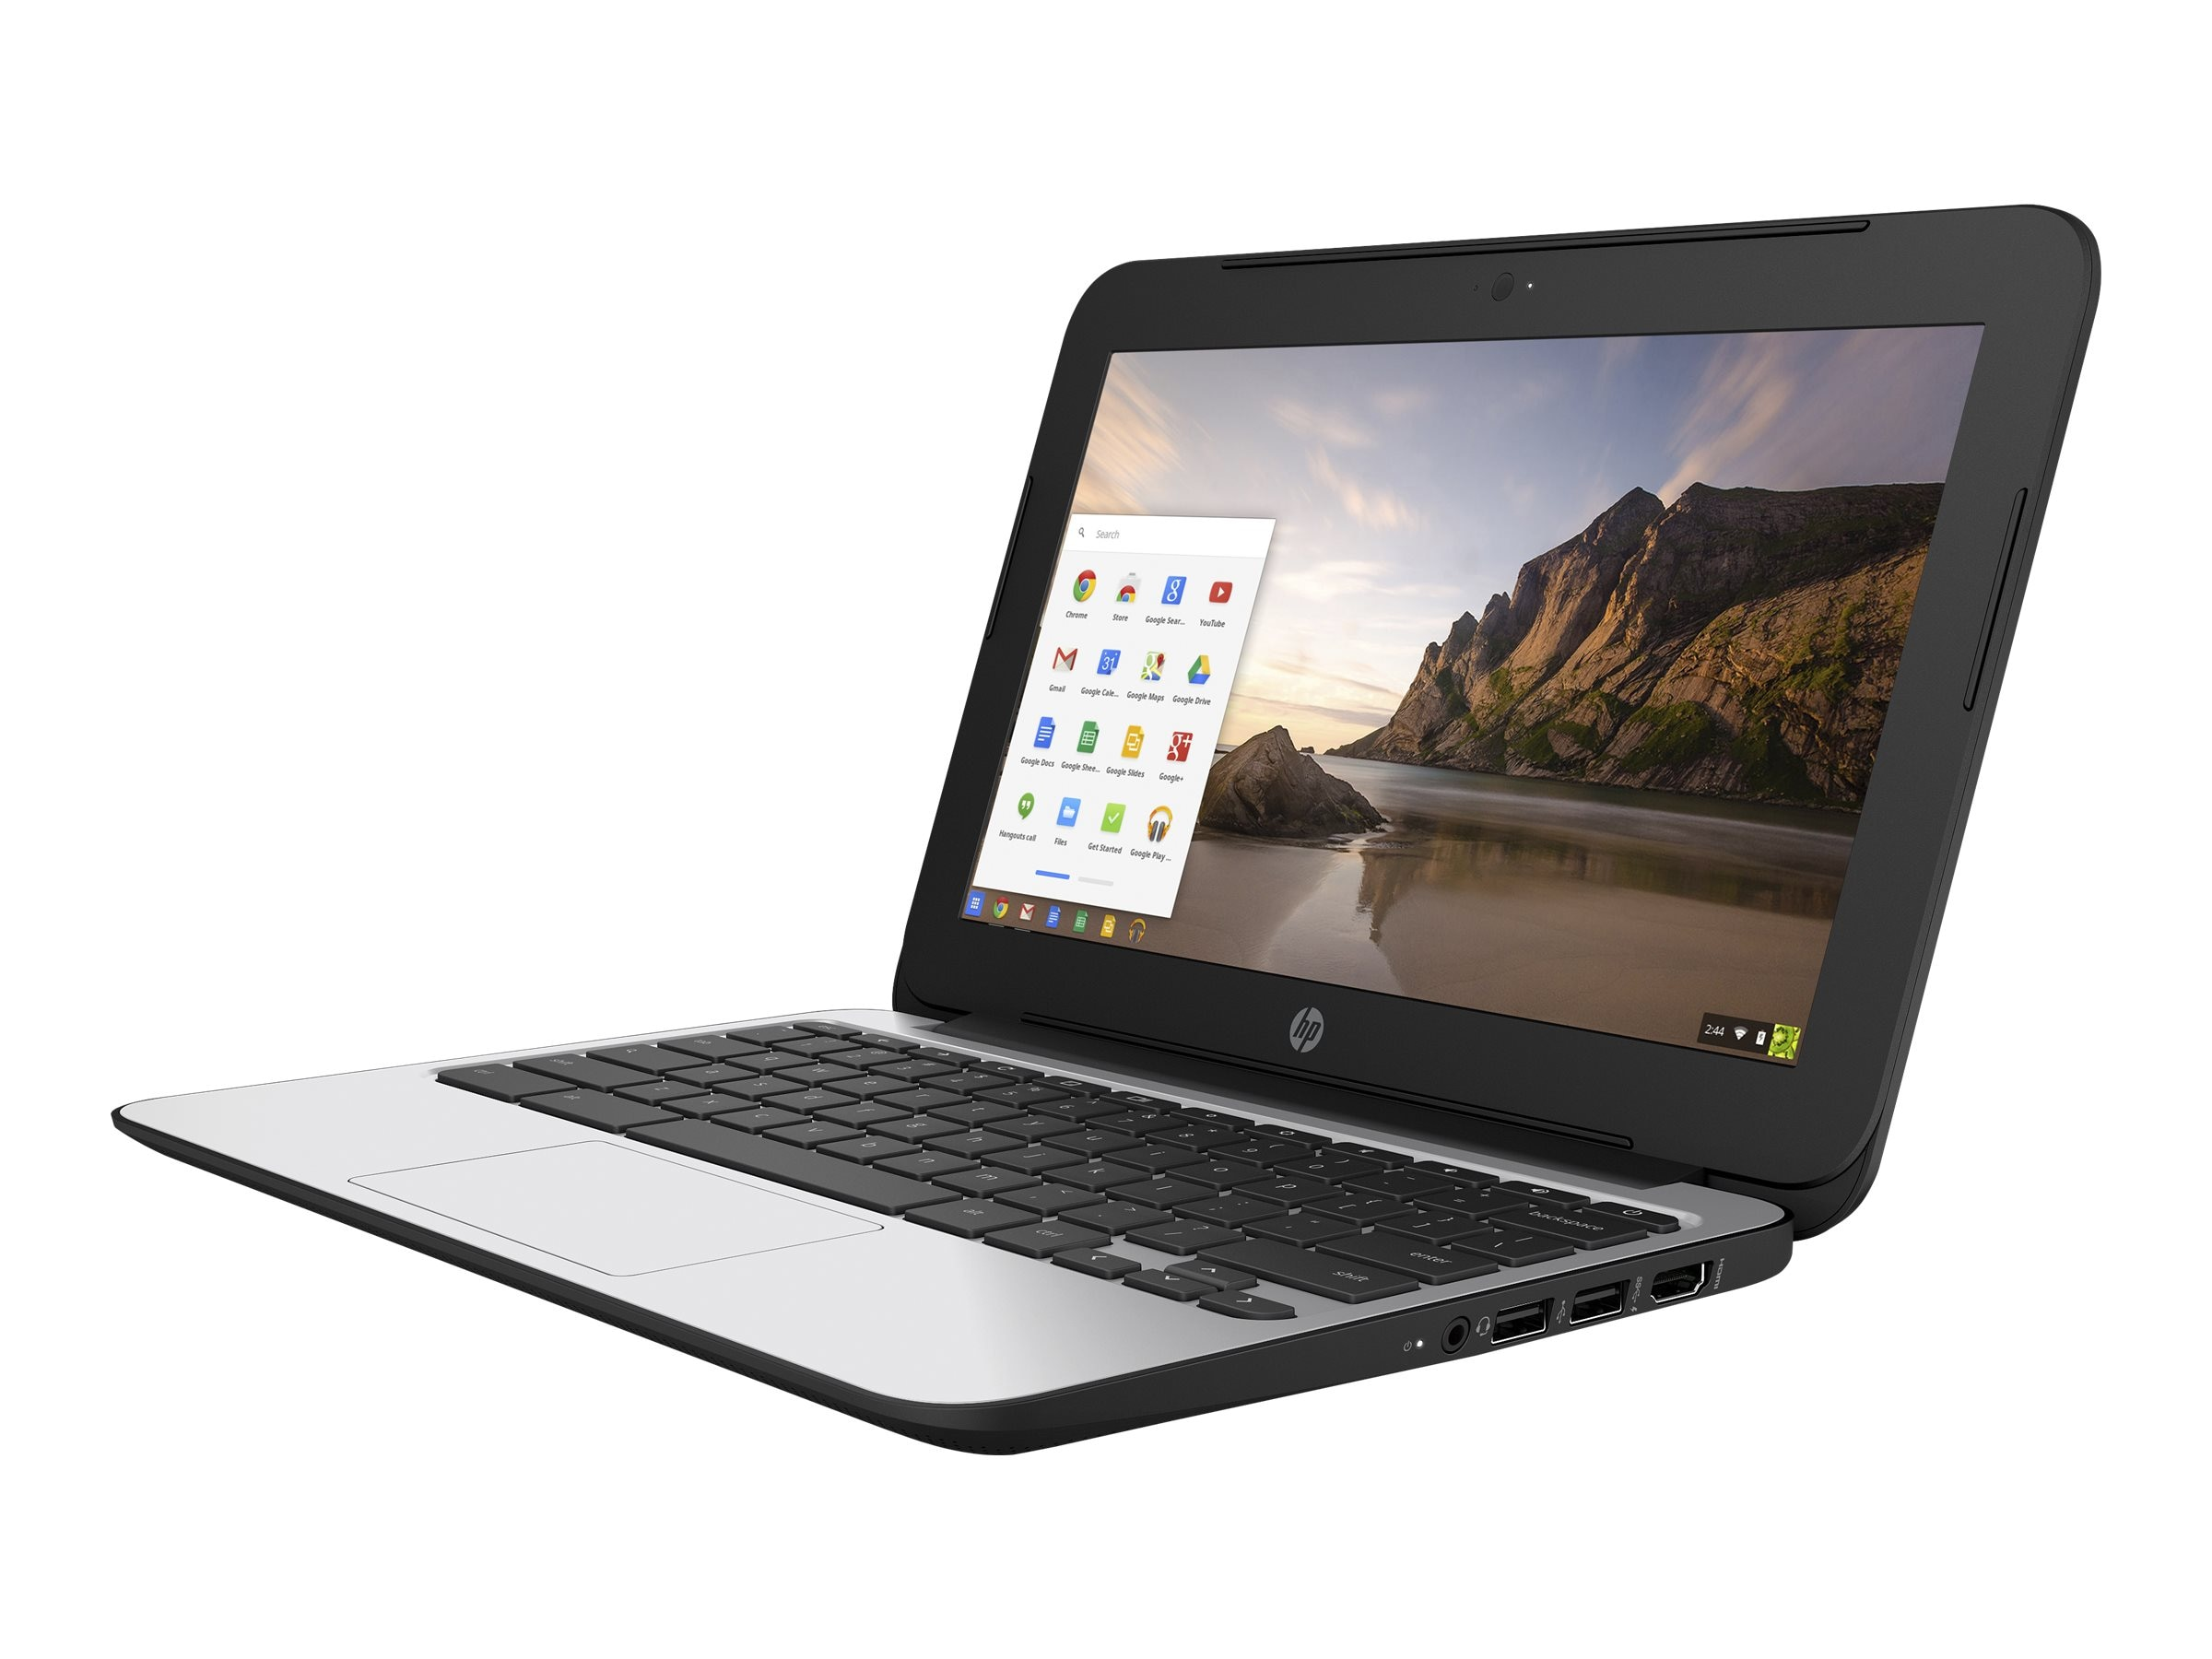 Scratch & Dent HP Chromebook 11 EE G4 Celeron N2840 2.16GHz 4GB 16GB ac abgn BT WC 3C 11.6 HD Chrome OS, V2W30UT#ABA, 32667379, Notebooks